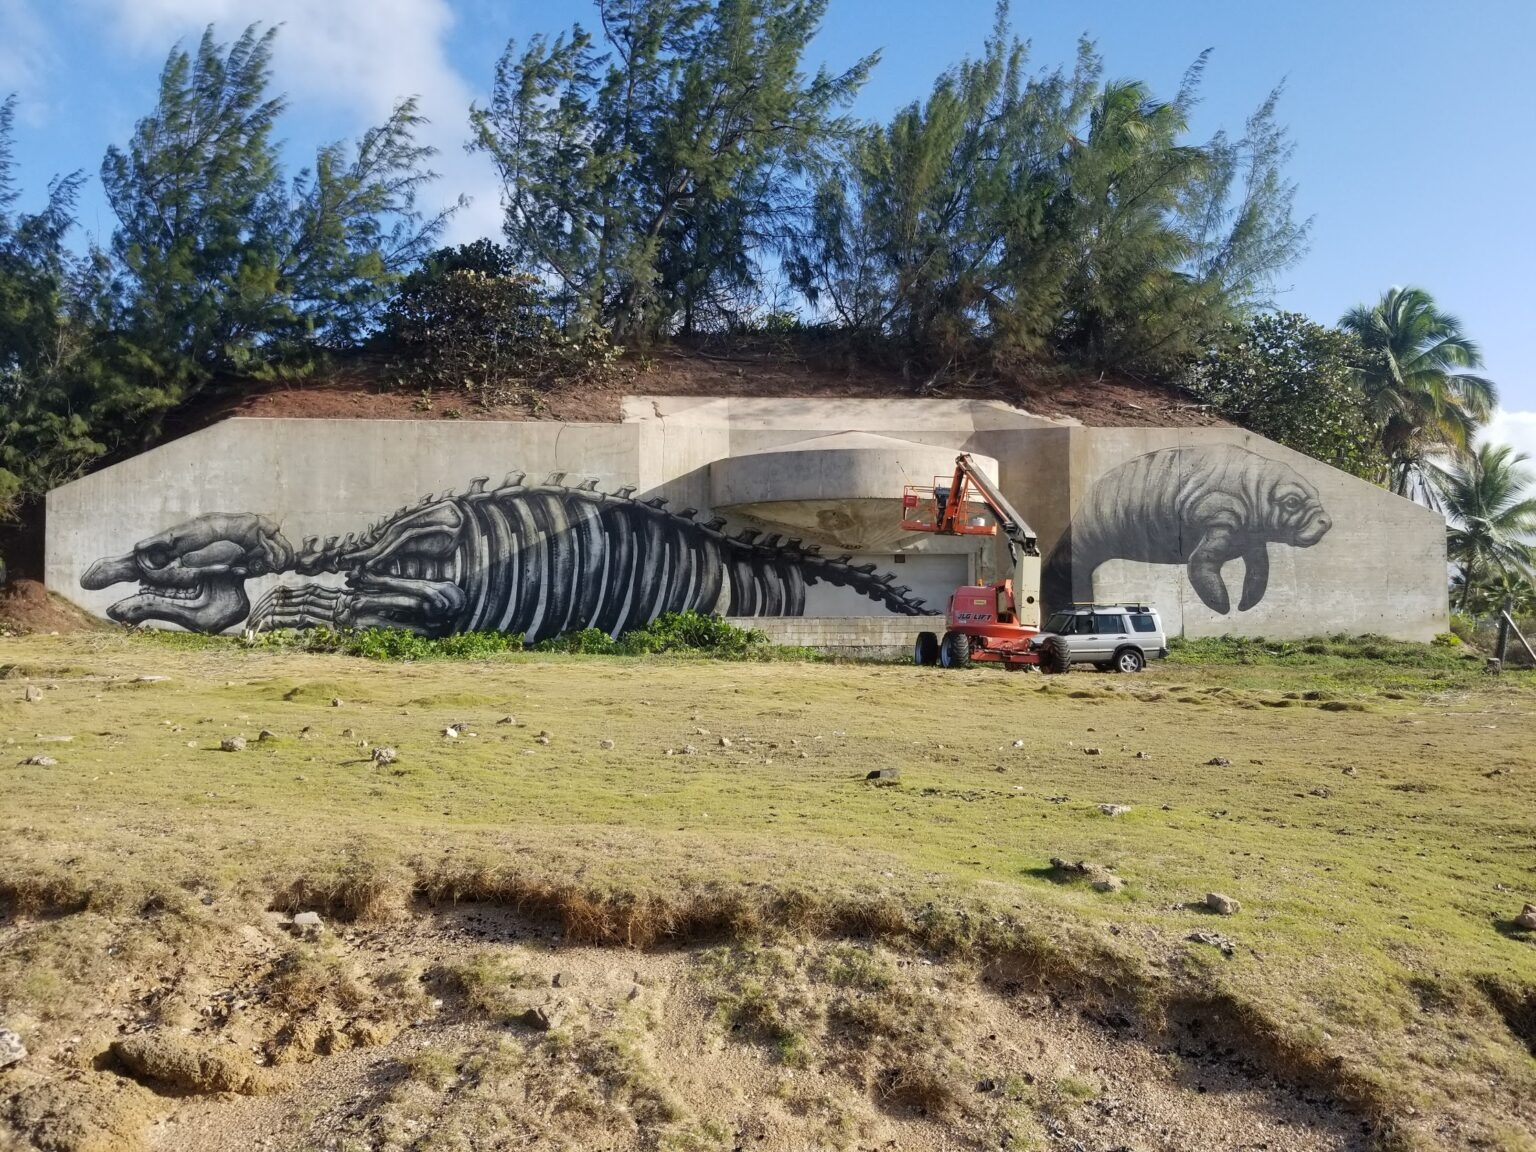 #PRLOVE and MANATEE by ROA